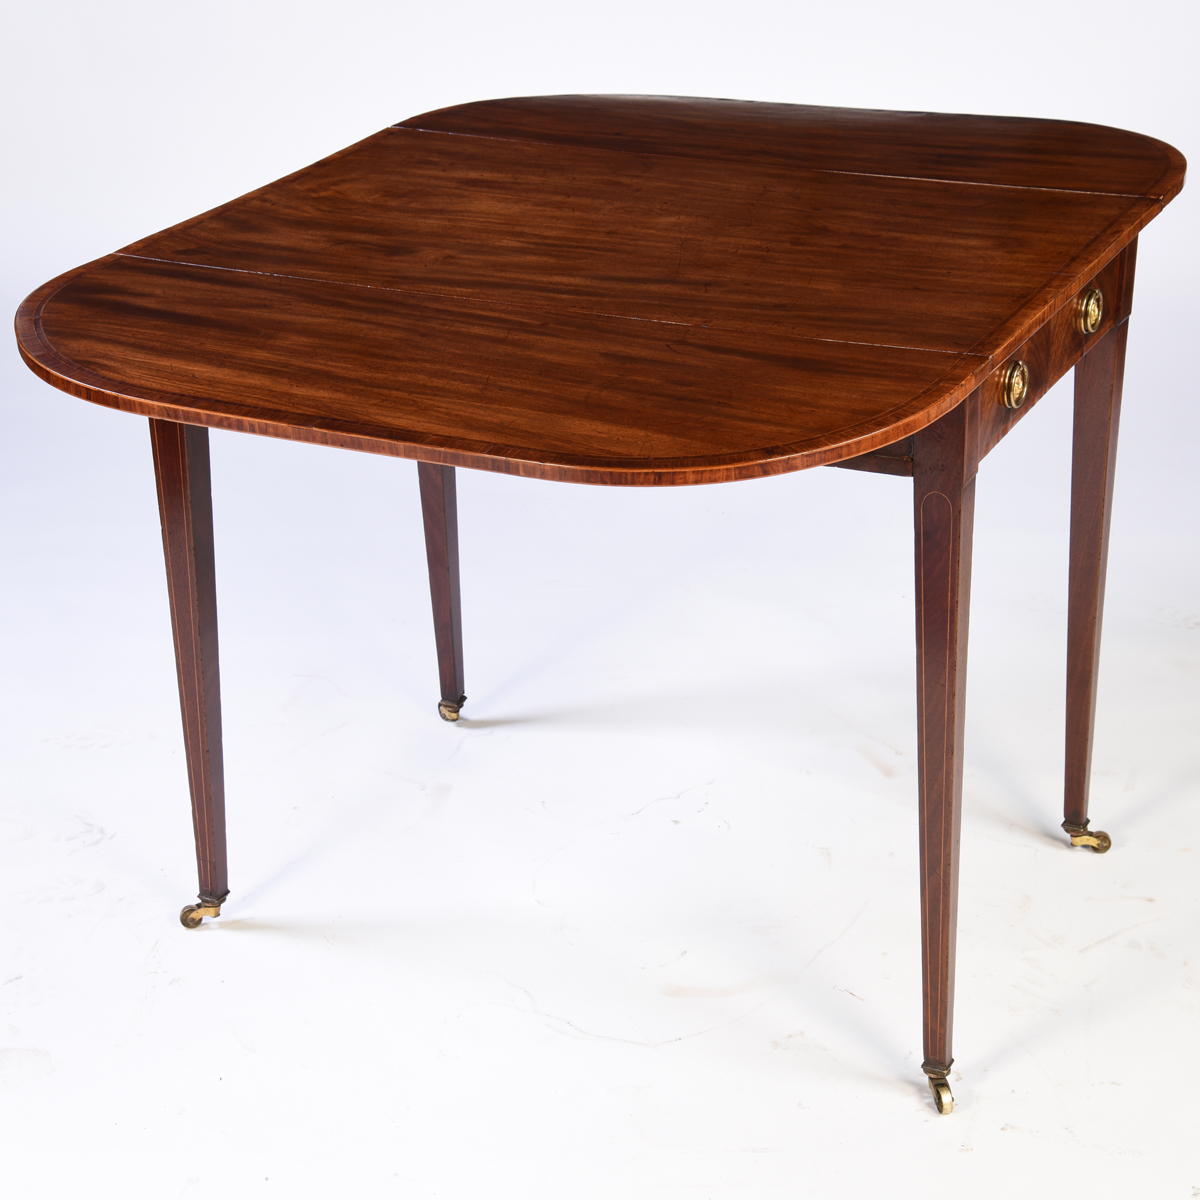 Es240014 Antique English Mahogany Pembroke Table · Es240014 ...